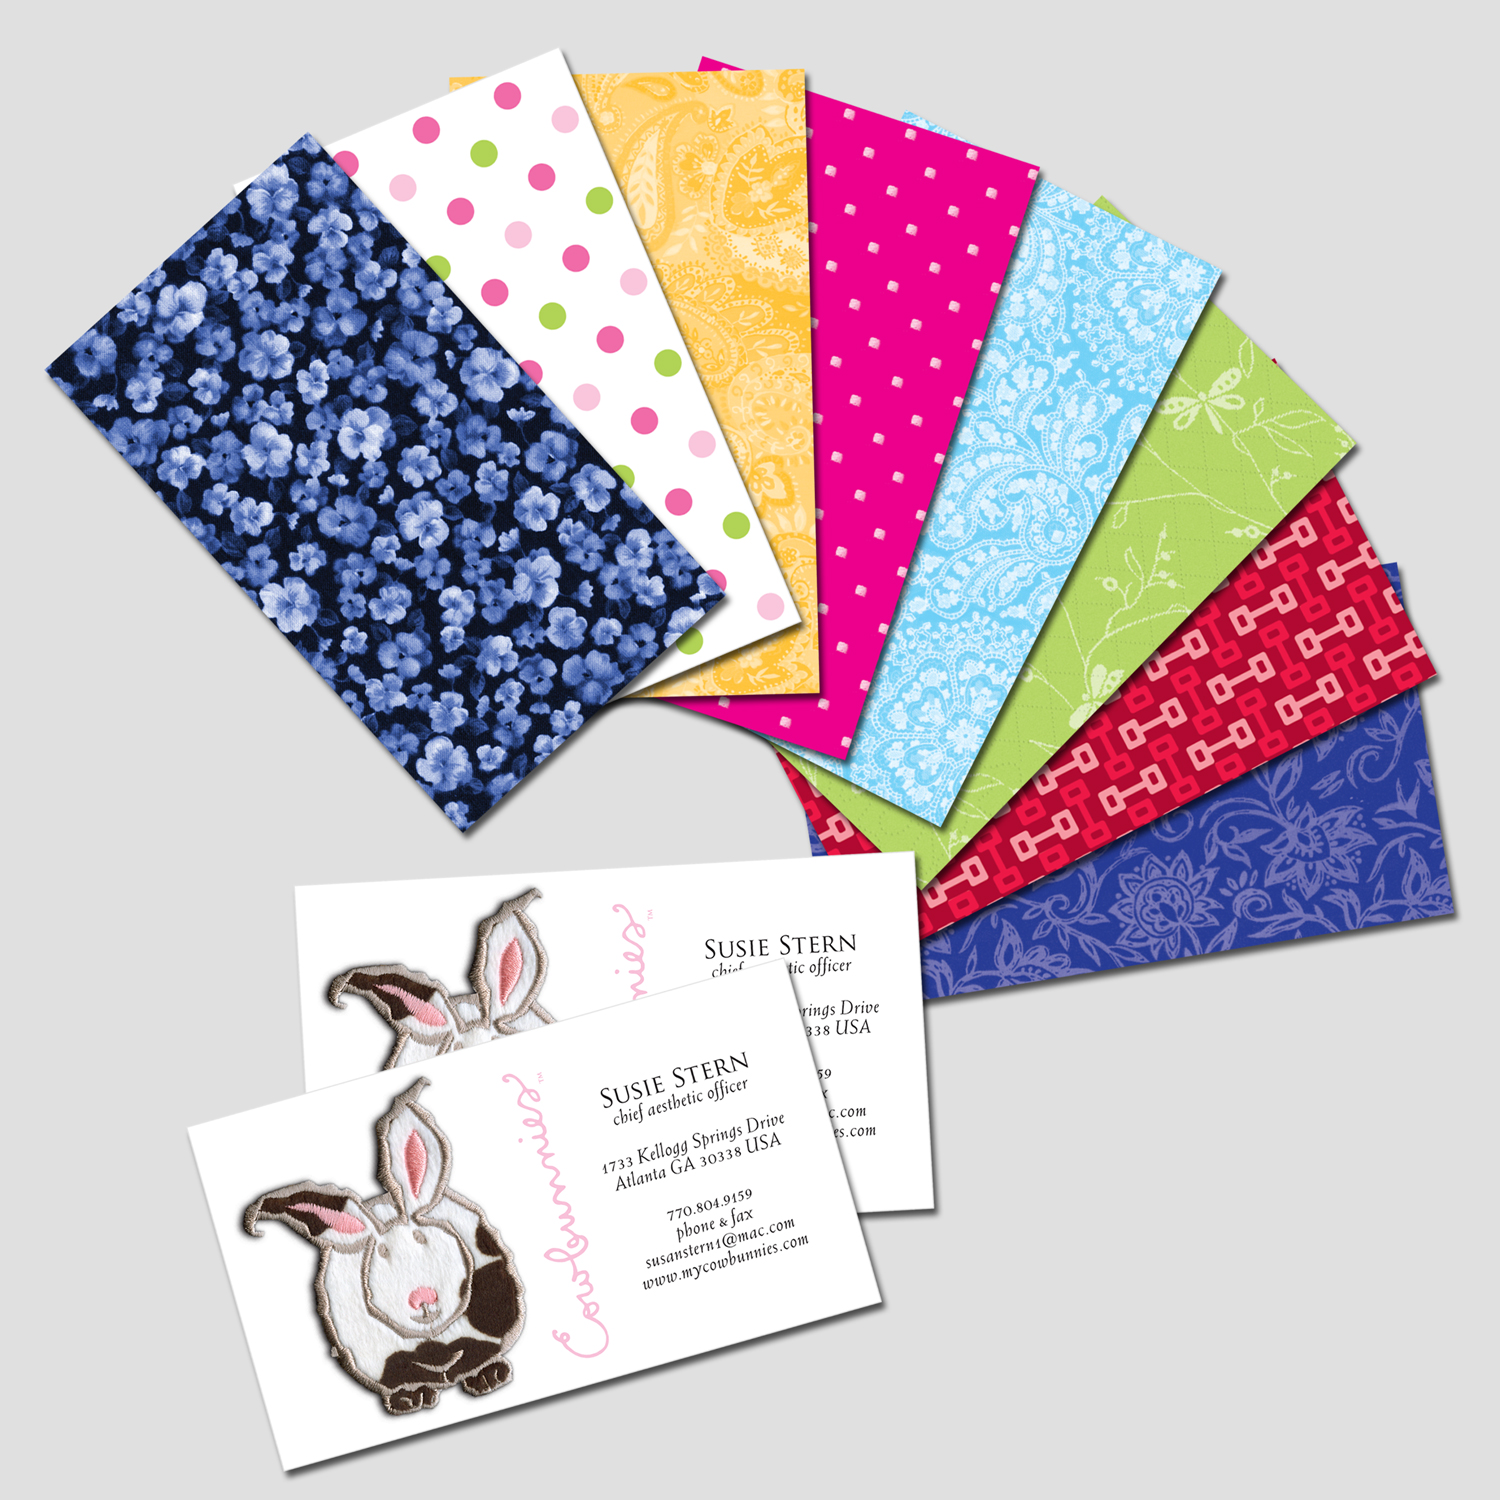 PRINT DESIGN - Cowbunnies | business cards - ©UnParalleled, LLC dba UP-Ideas / Roger Sawhill / Mark Braught - Atlanta, Georgia | Lawrenceville, Georgia | Commerce, Georgia